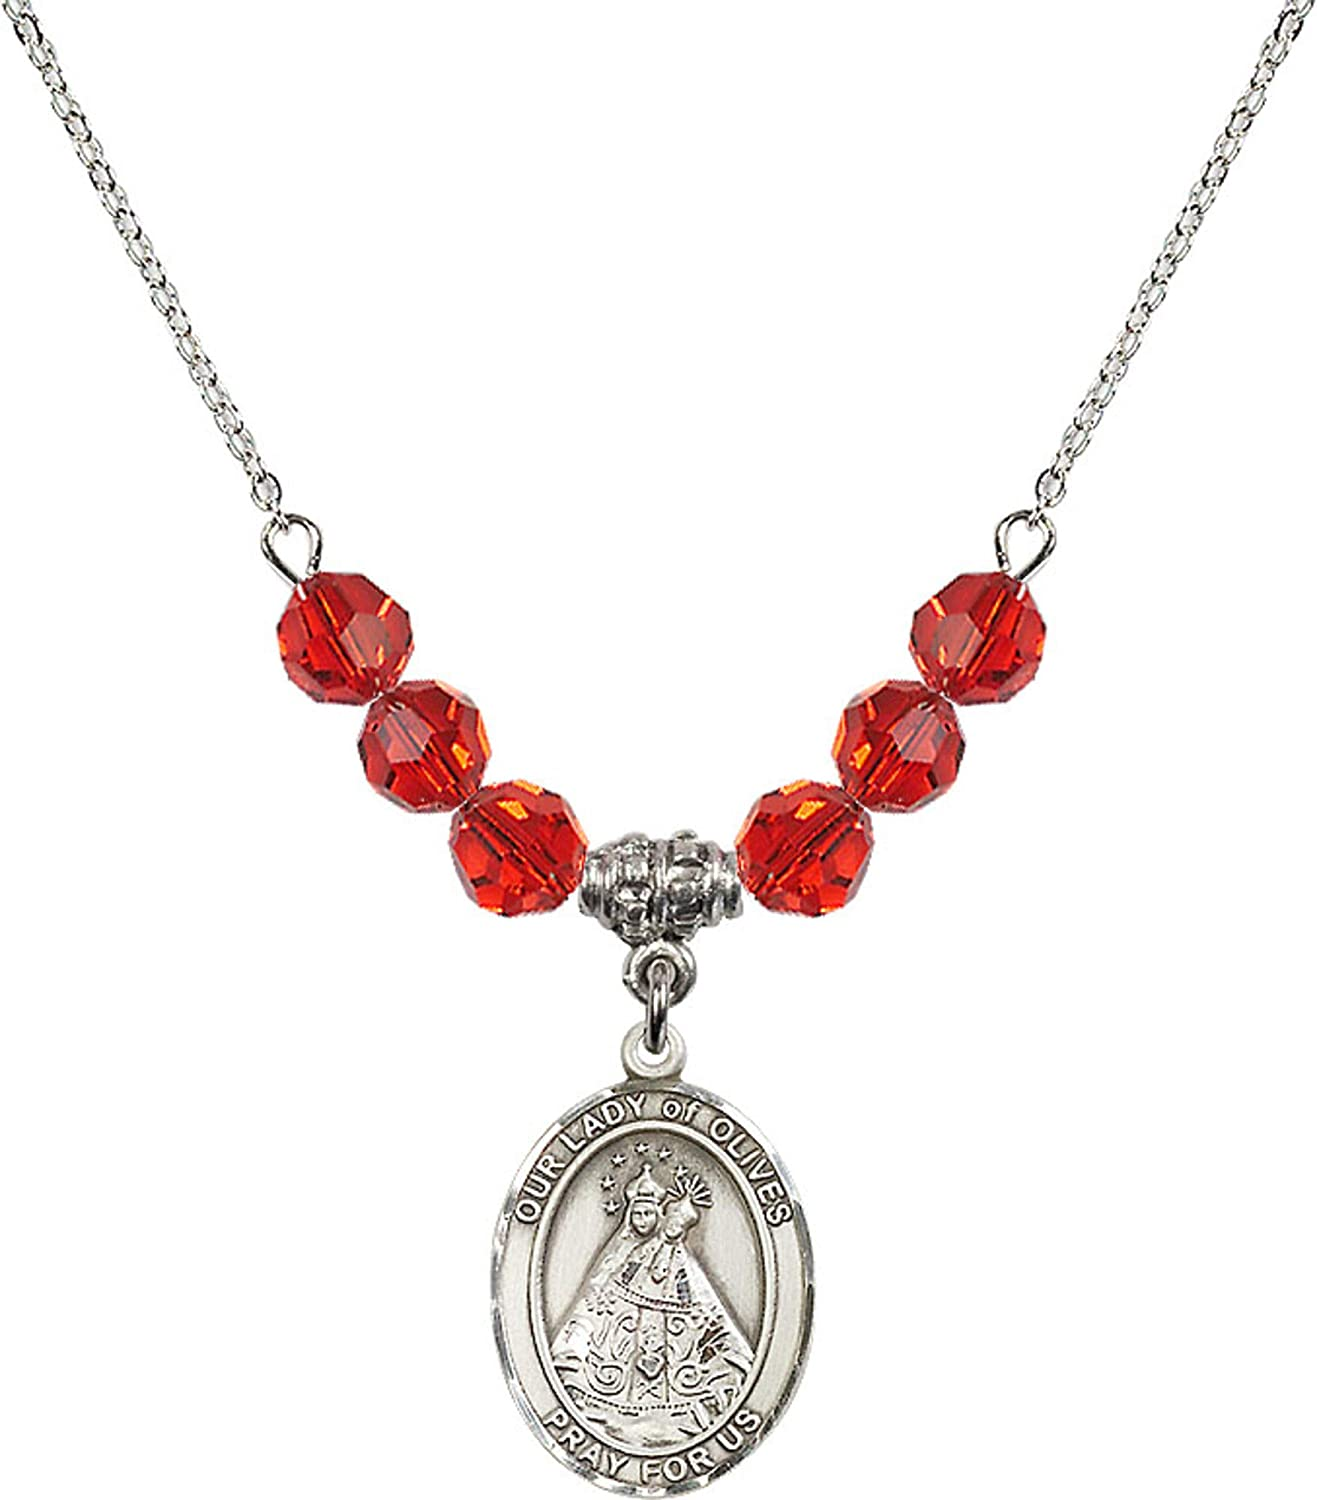 Bonyak Jewelry 18 Inch Rhodium Plated Necklace w// 6mm Red July Birth Month Stone Beads and Our Lady of Olives Charm